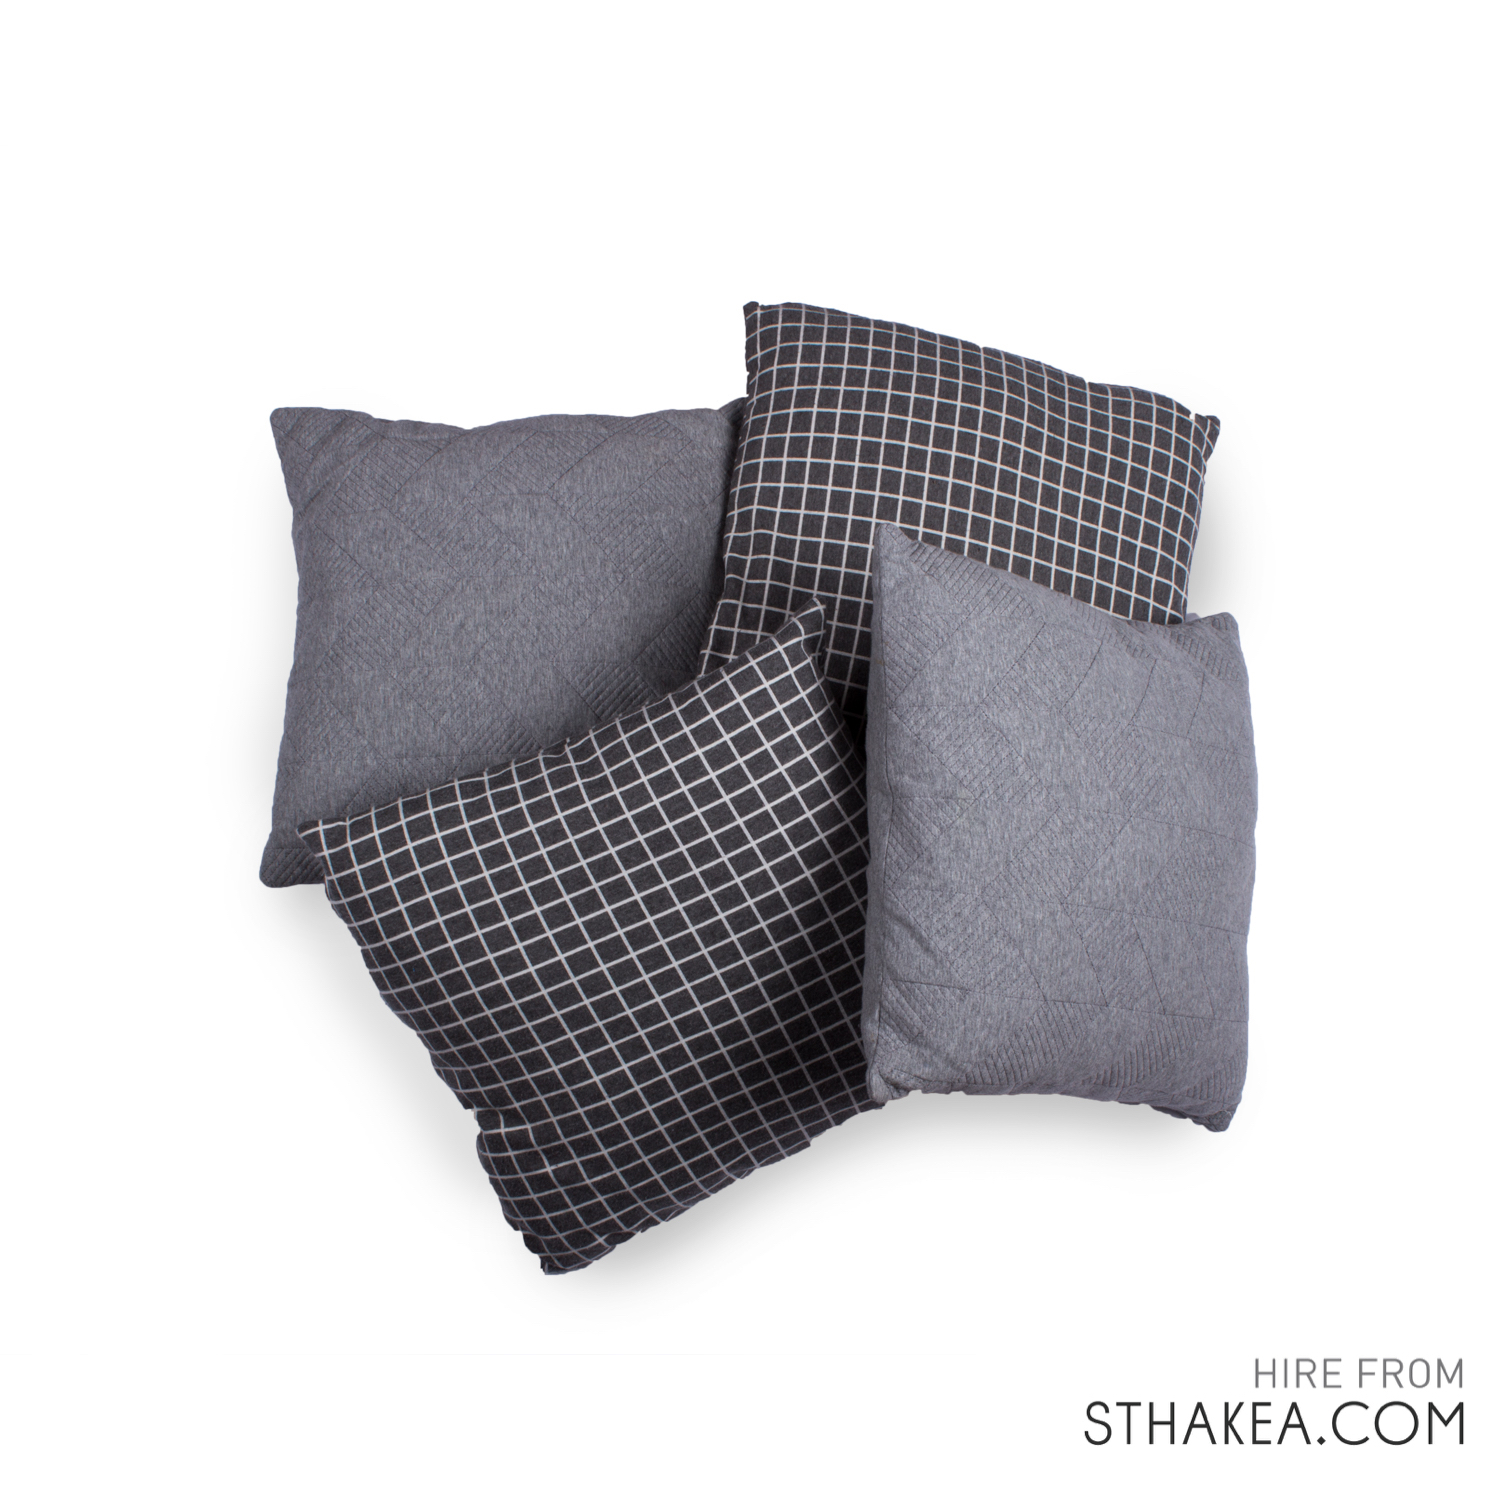 St Hakea Melbourne Event Hire Grey Thow Cushions.jpg